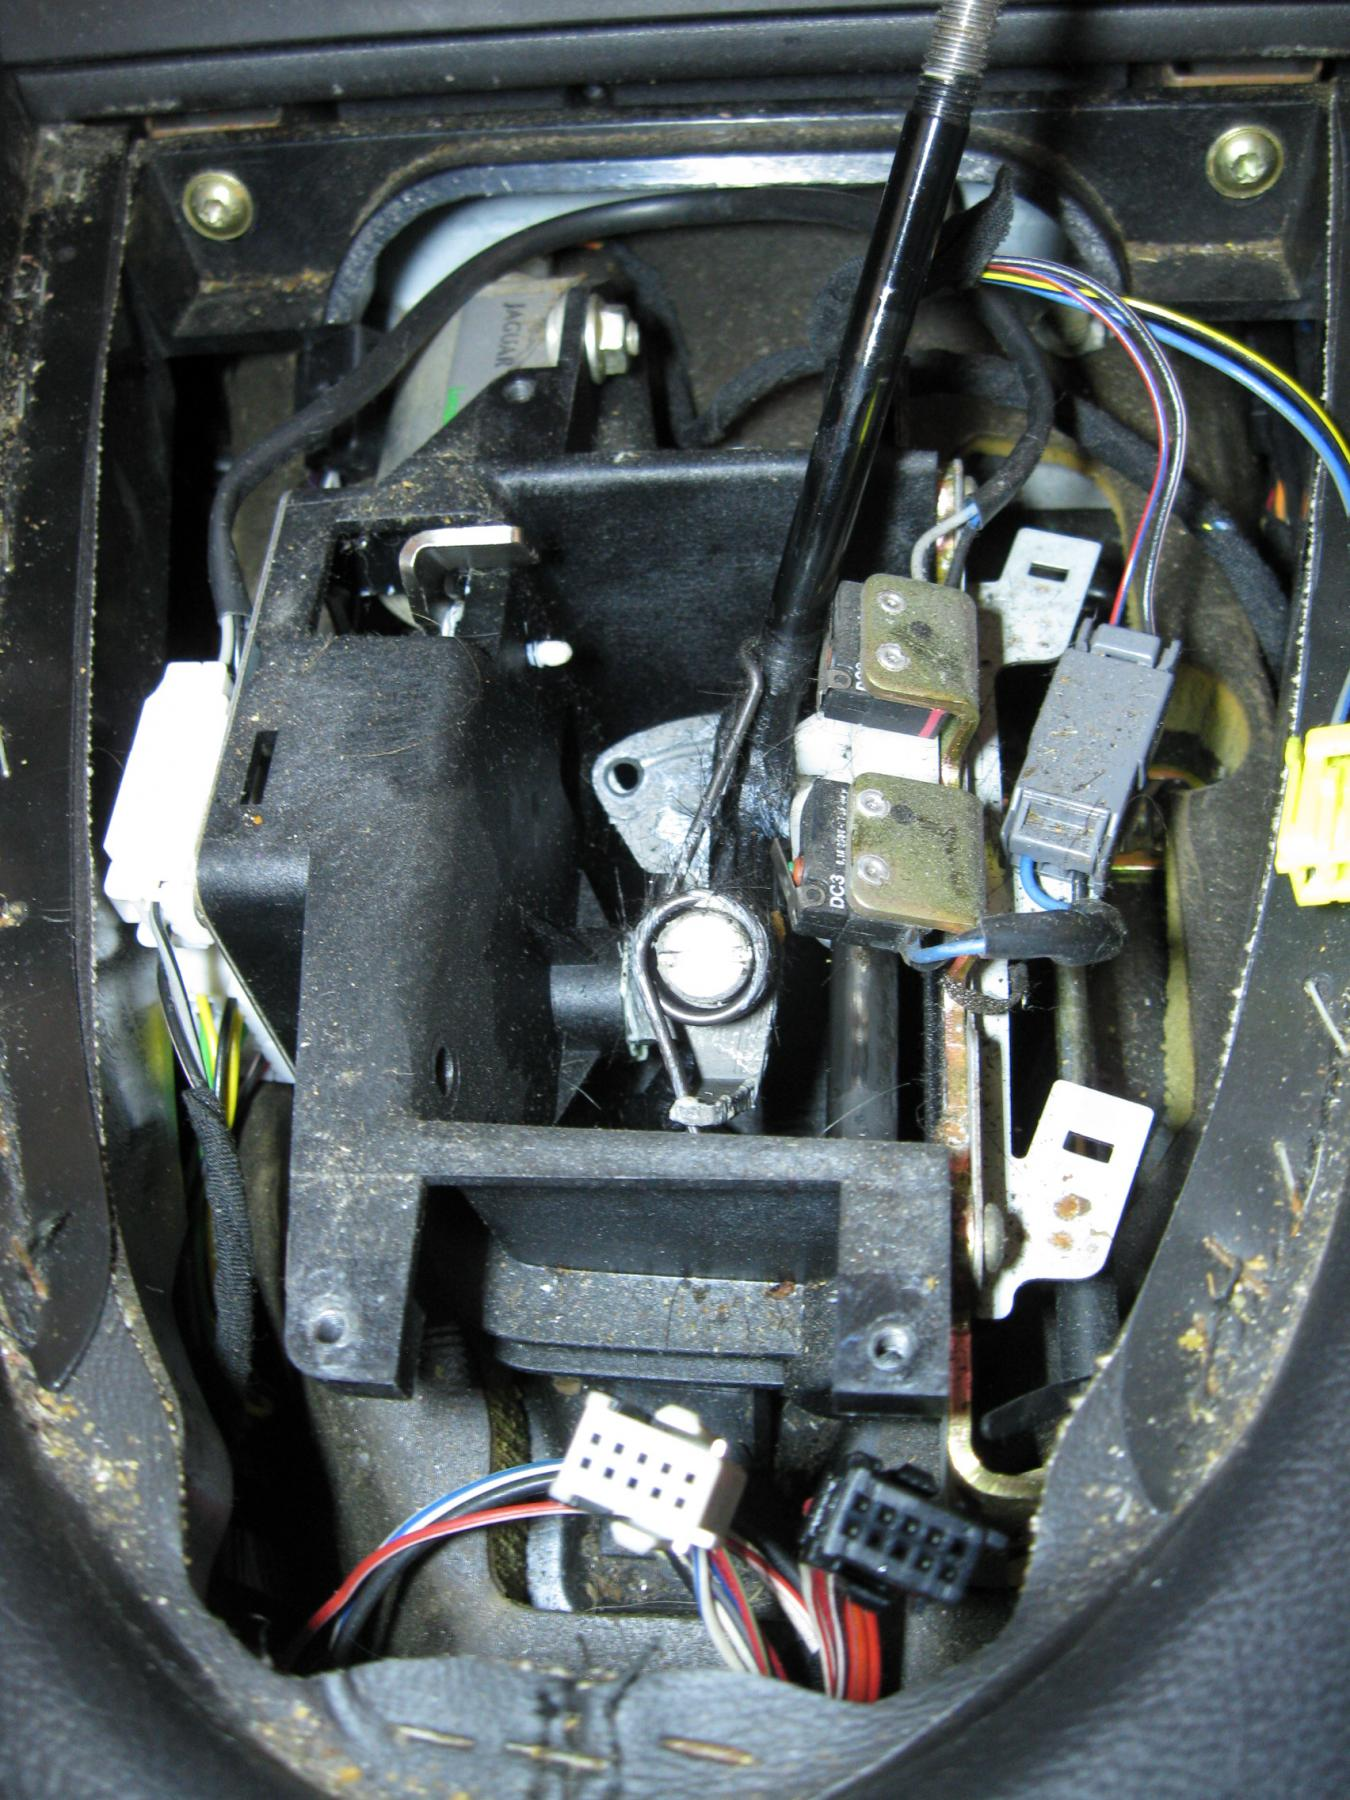 Xk8 Gearbox Issue